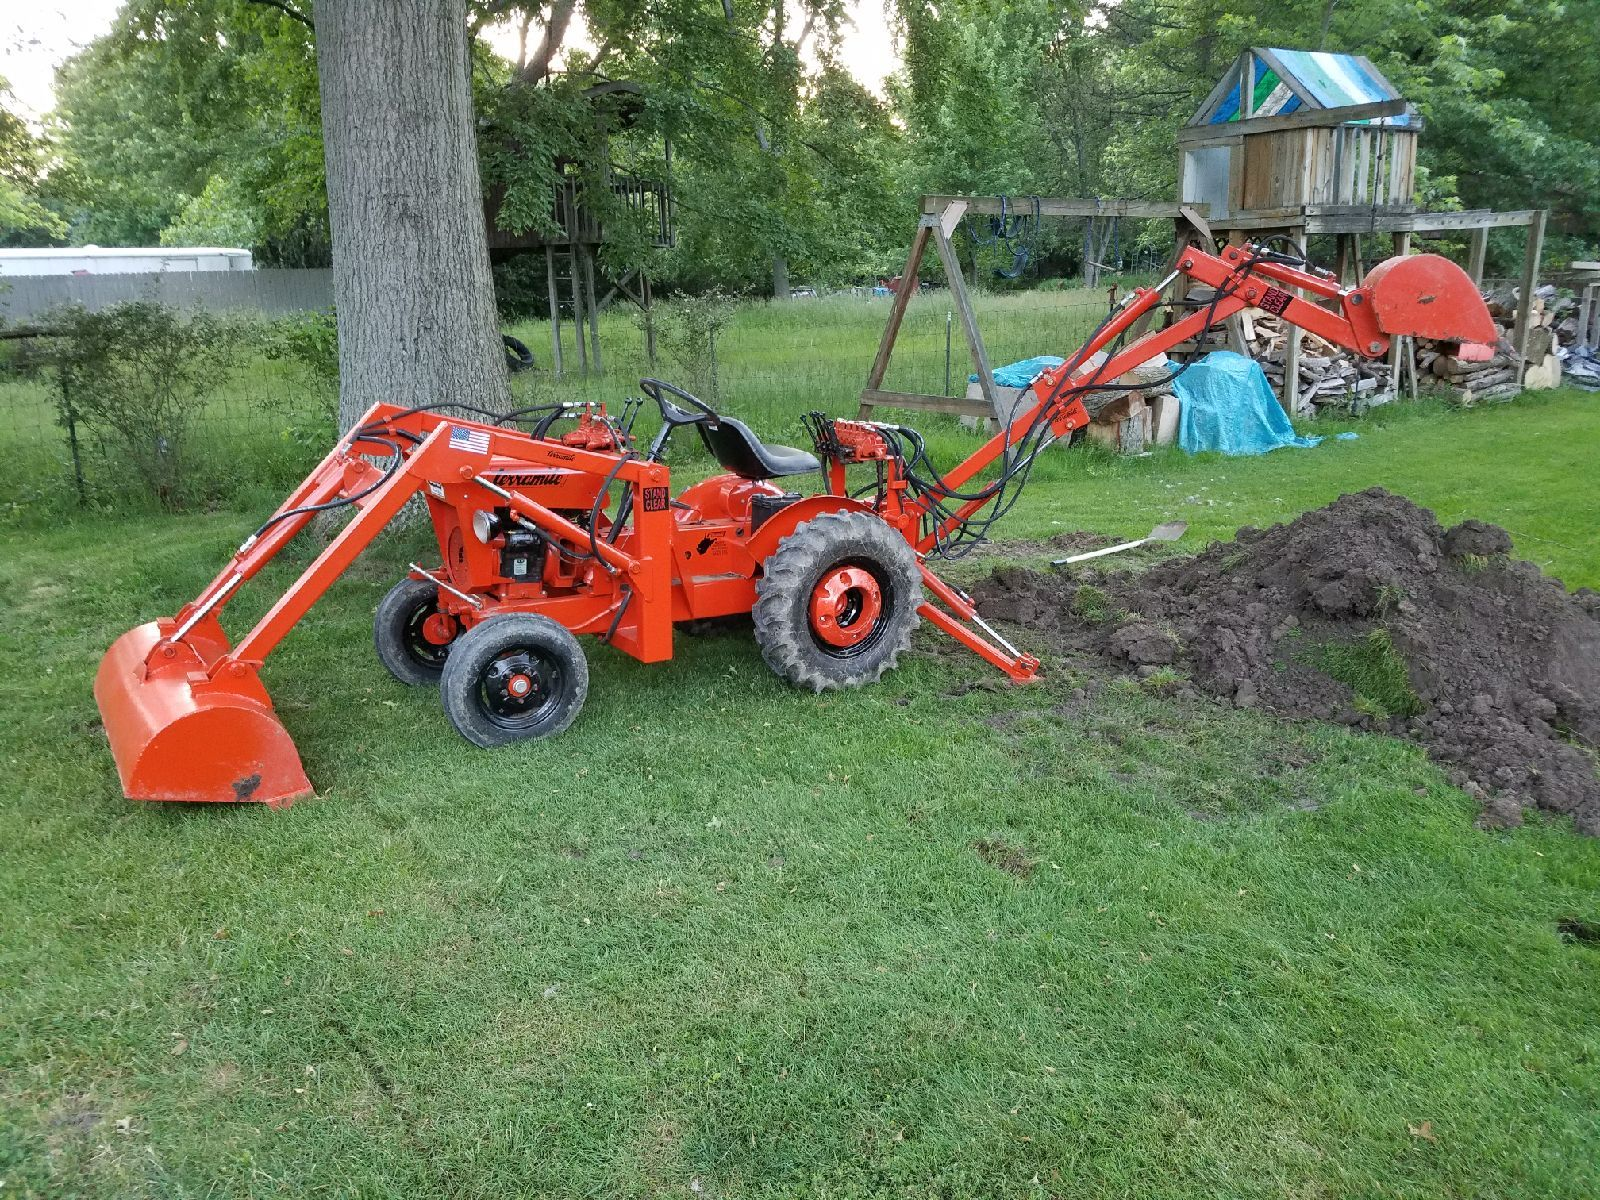 Pin By Knud On Terramite Economy Tractor Small Tractors Tractor